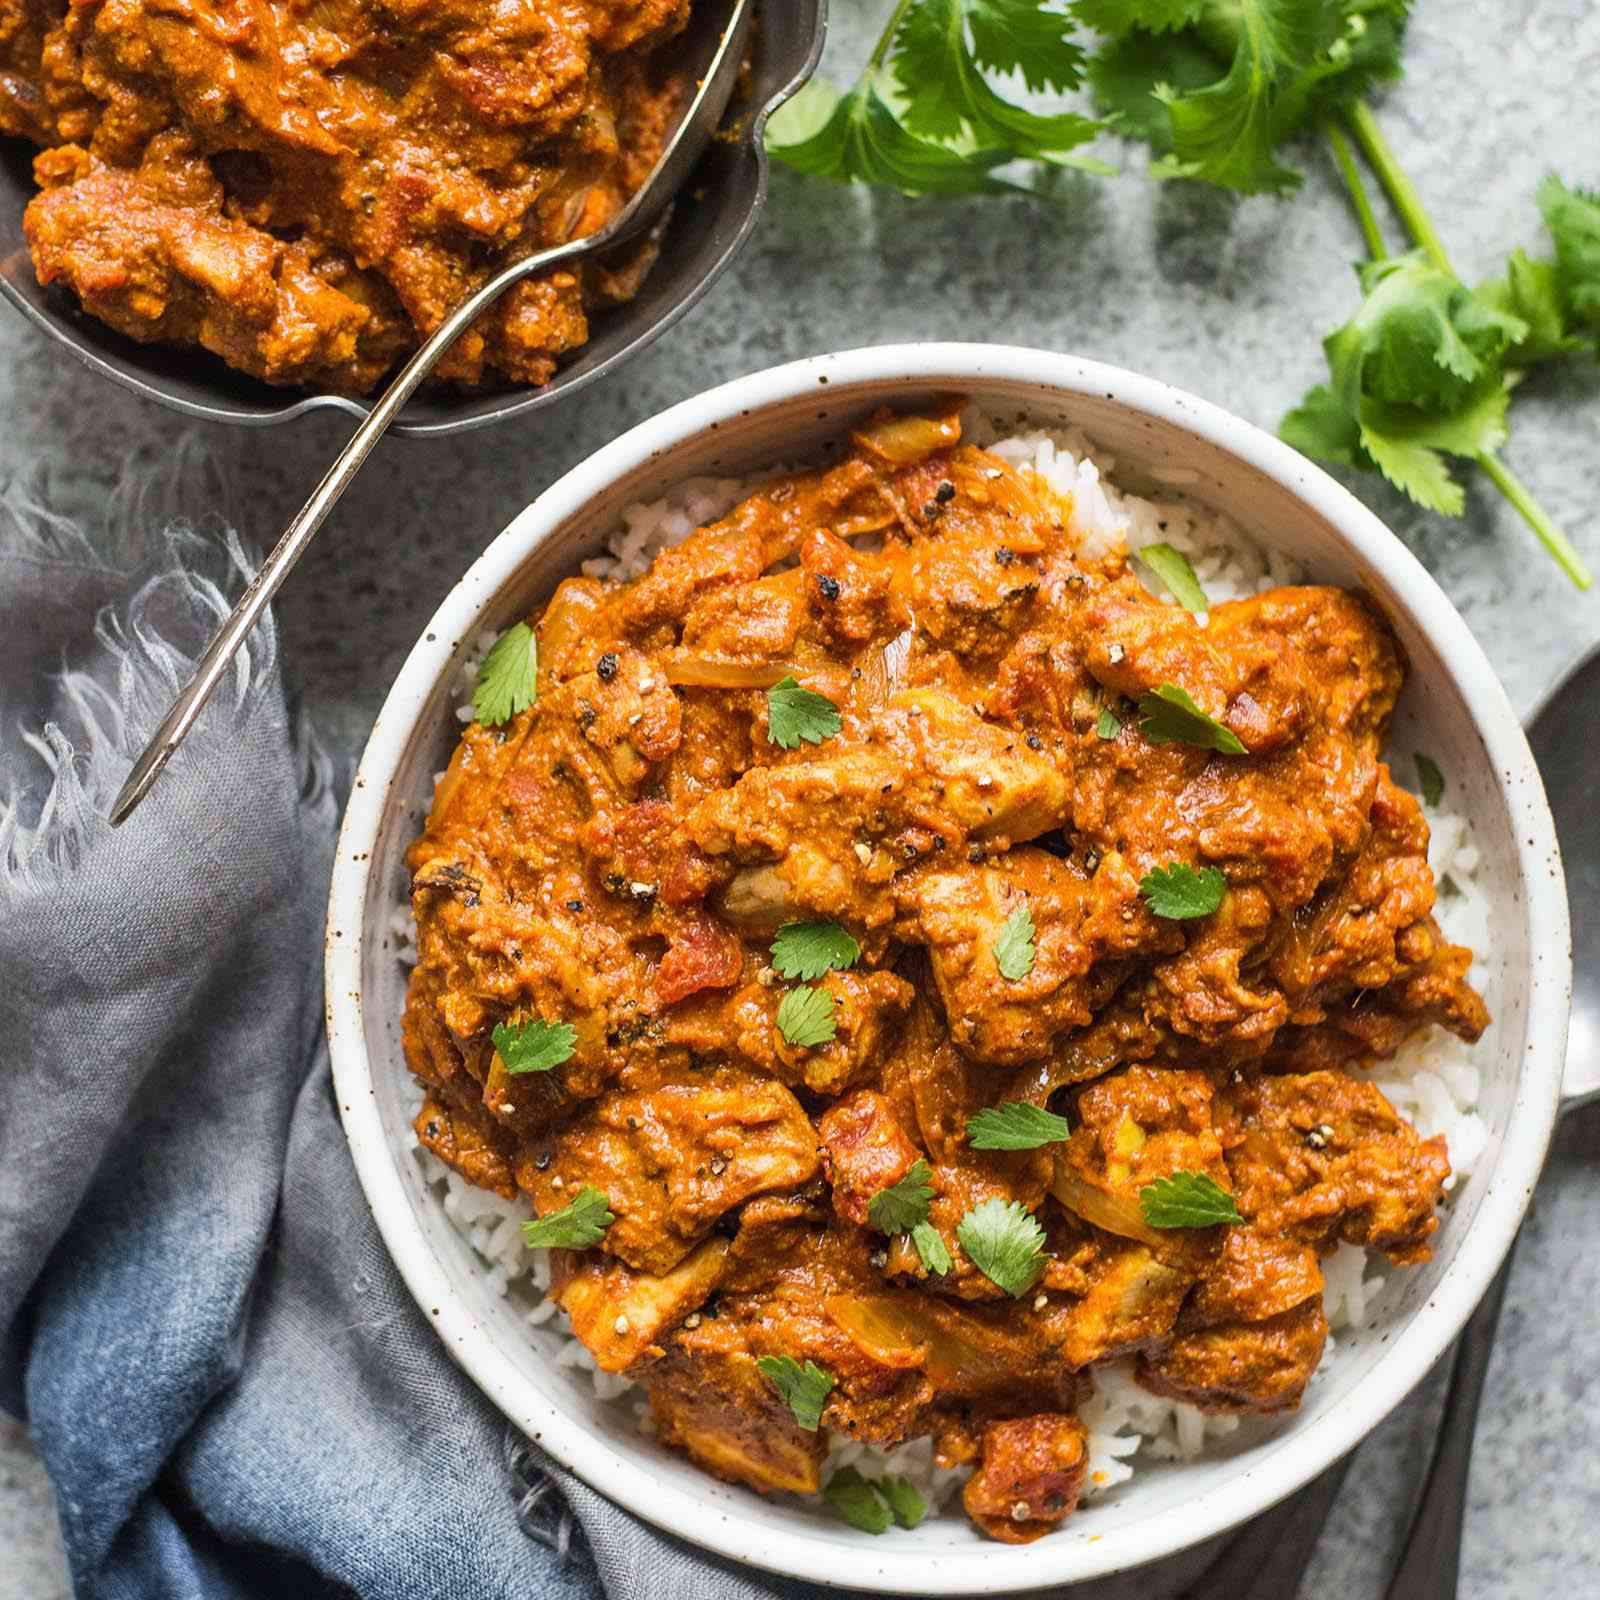 Chicken Tikka Masala Recipe in a bowl with rice and cilantro sprigs